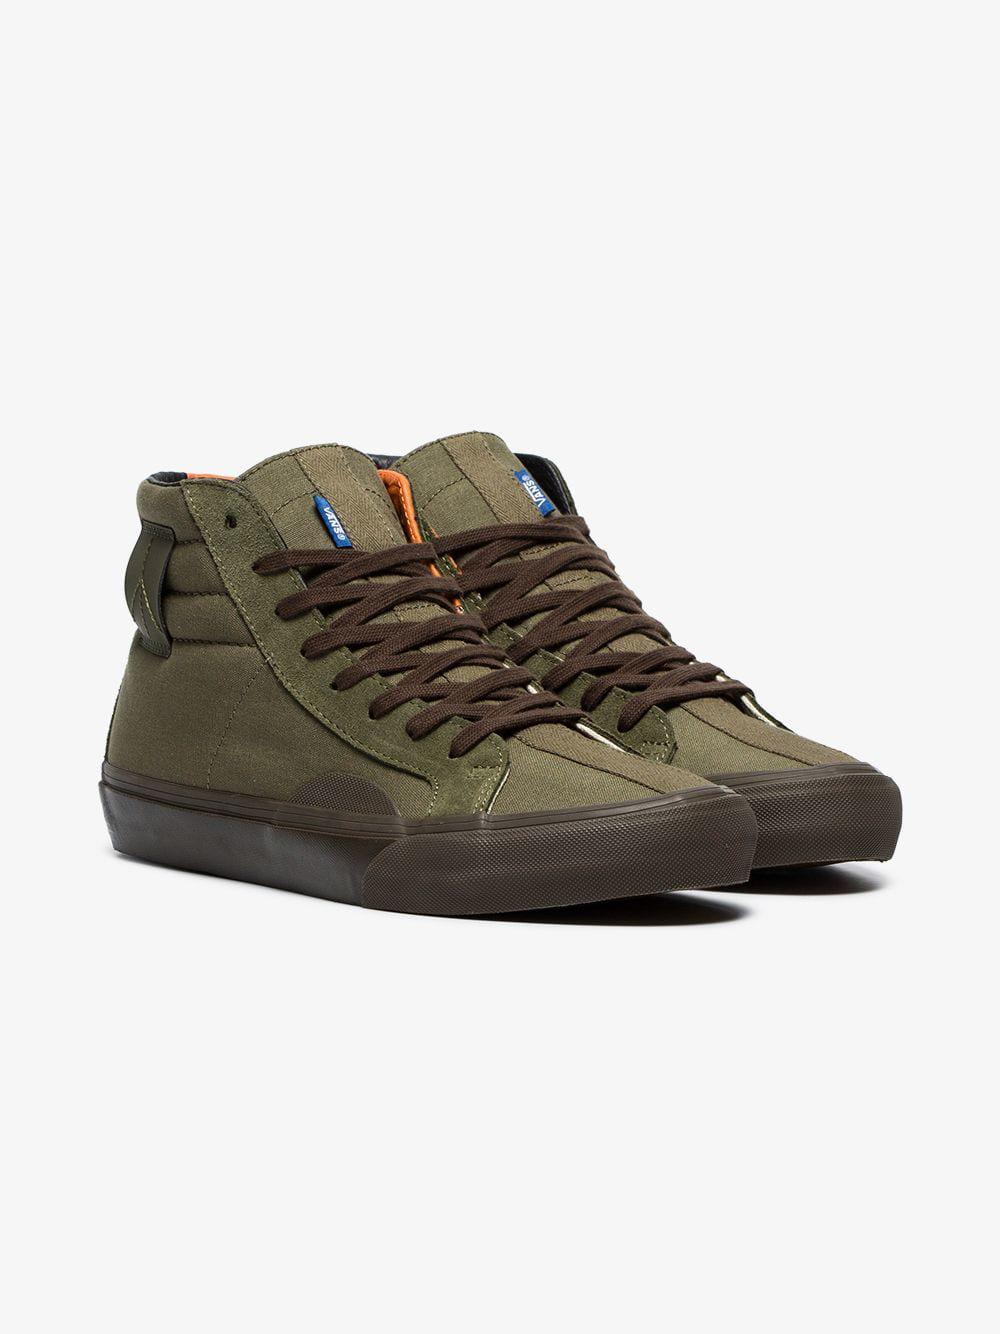 07e556e9a5 Vans Green Vault Cotton High Top Trainers in Green for Men - Lyst